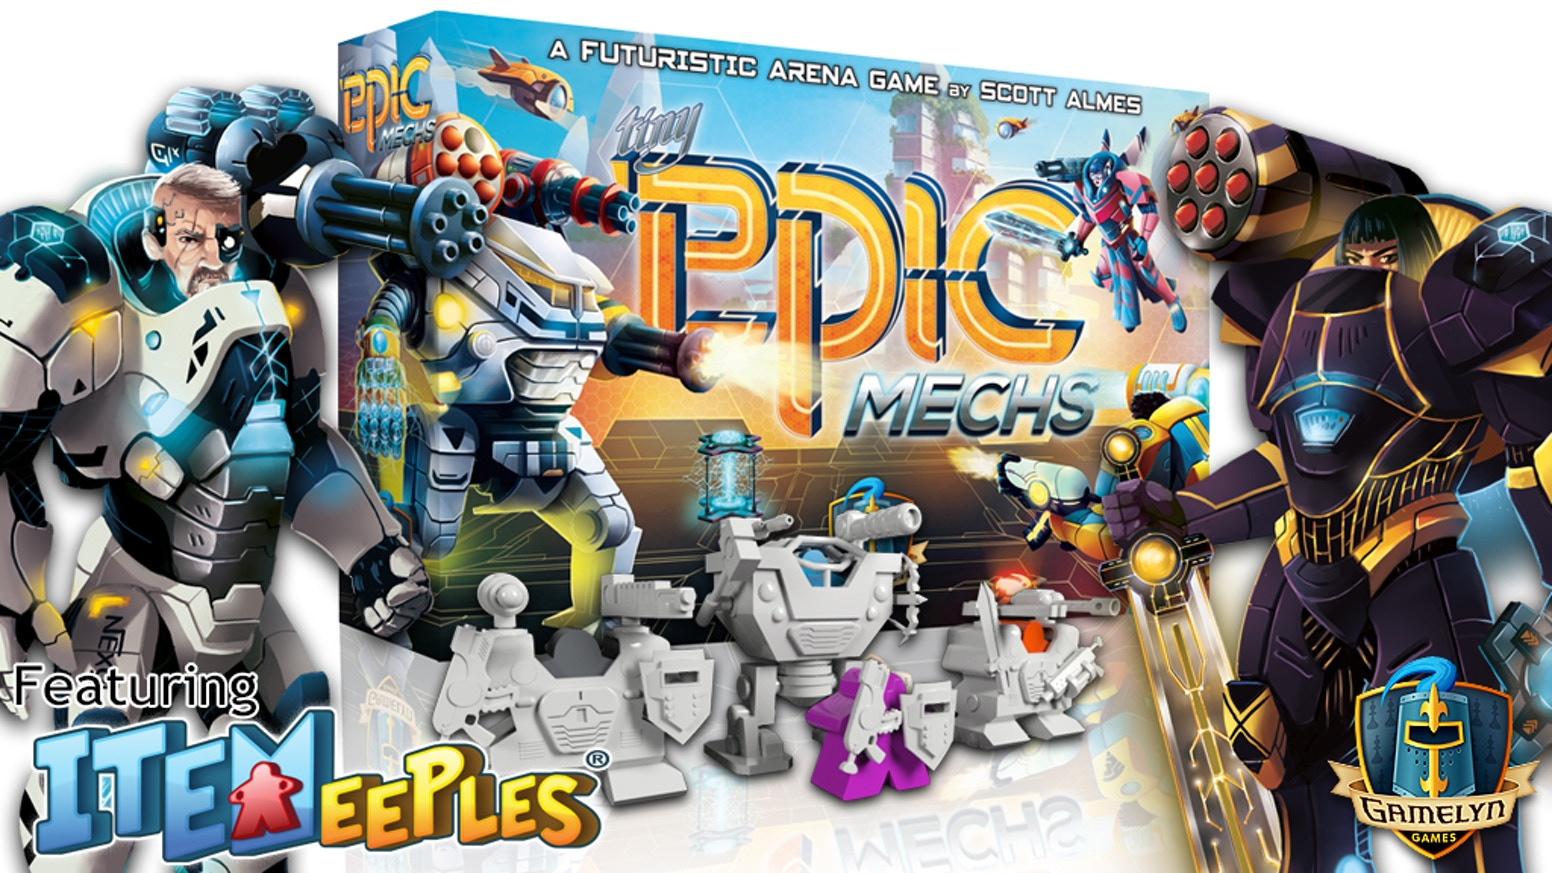 A 1-4 player fast-paced action-programming game of arena combat featuring a Mech and Power Armors to put your ITEMeeples directly into!